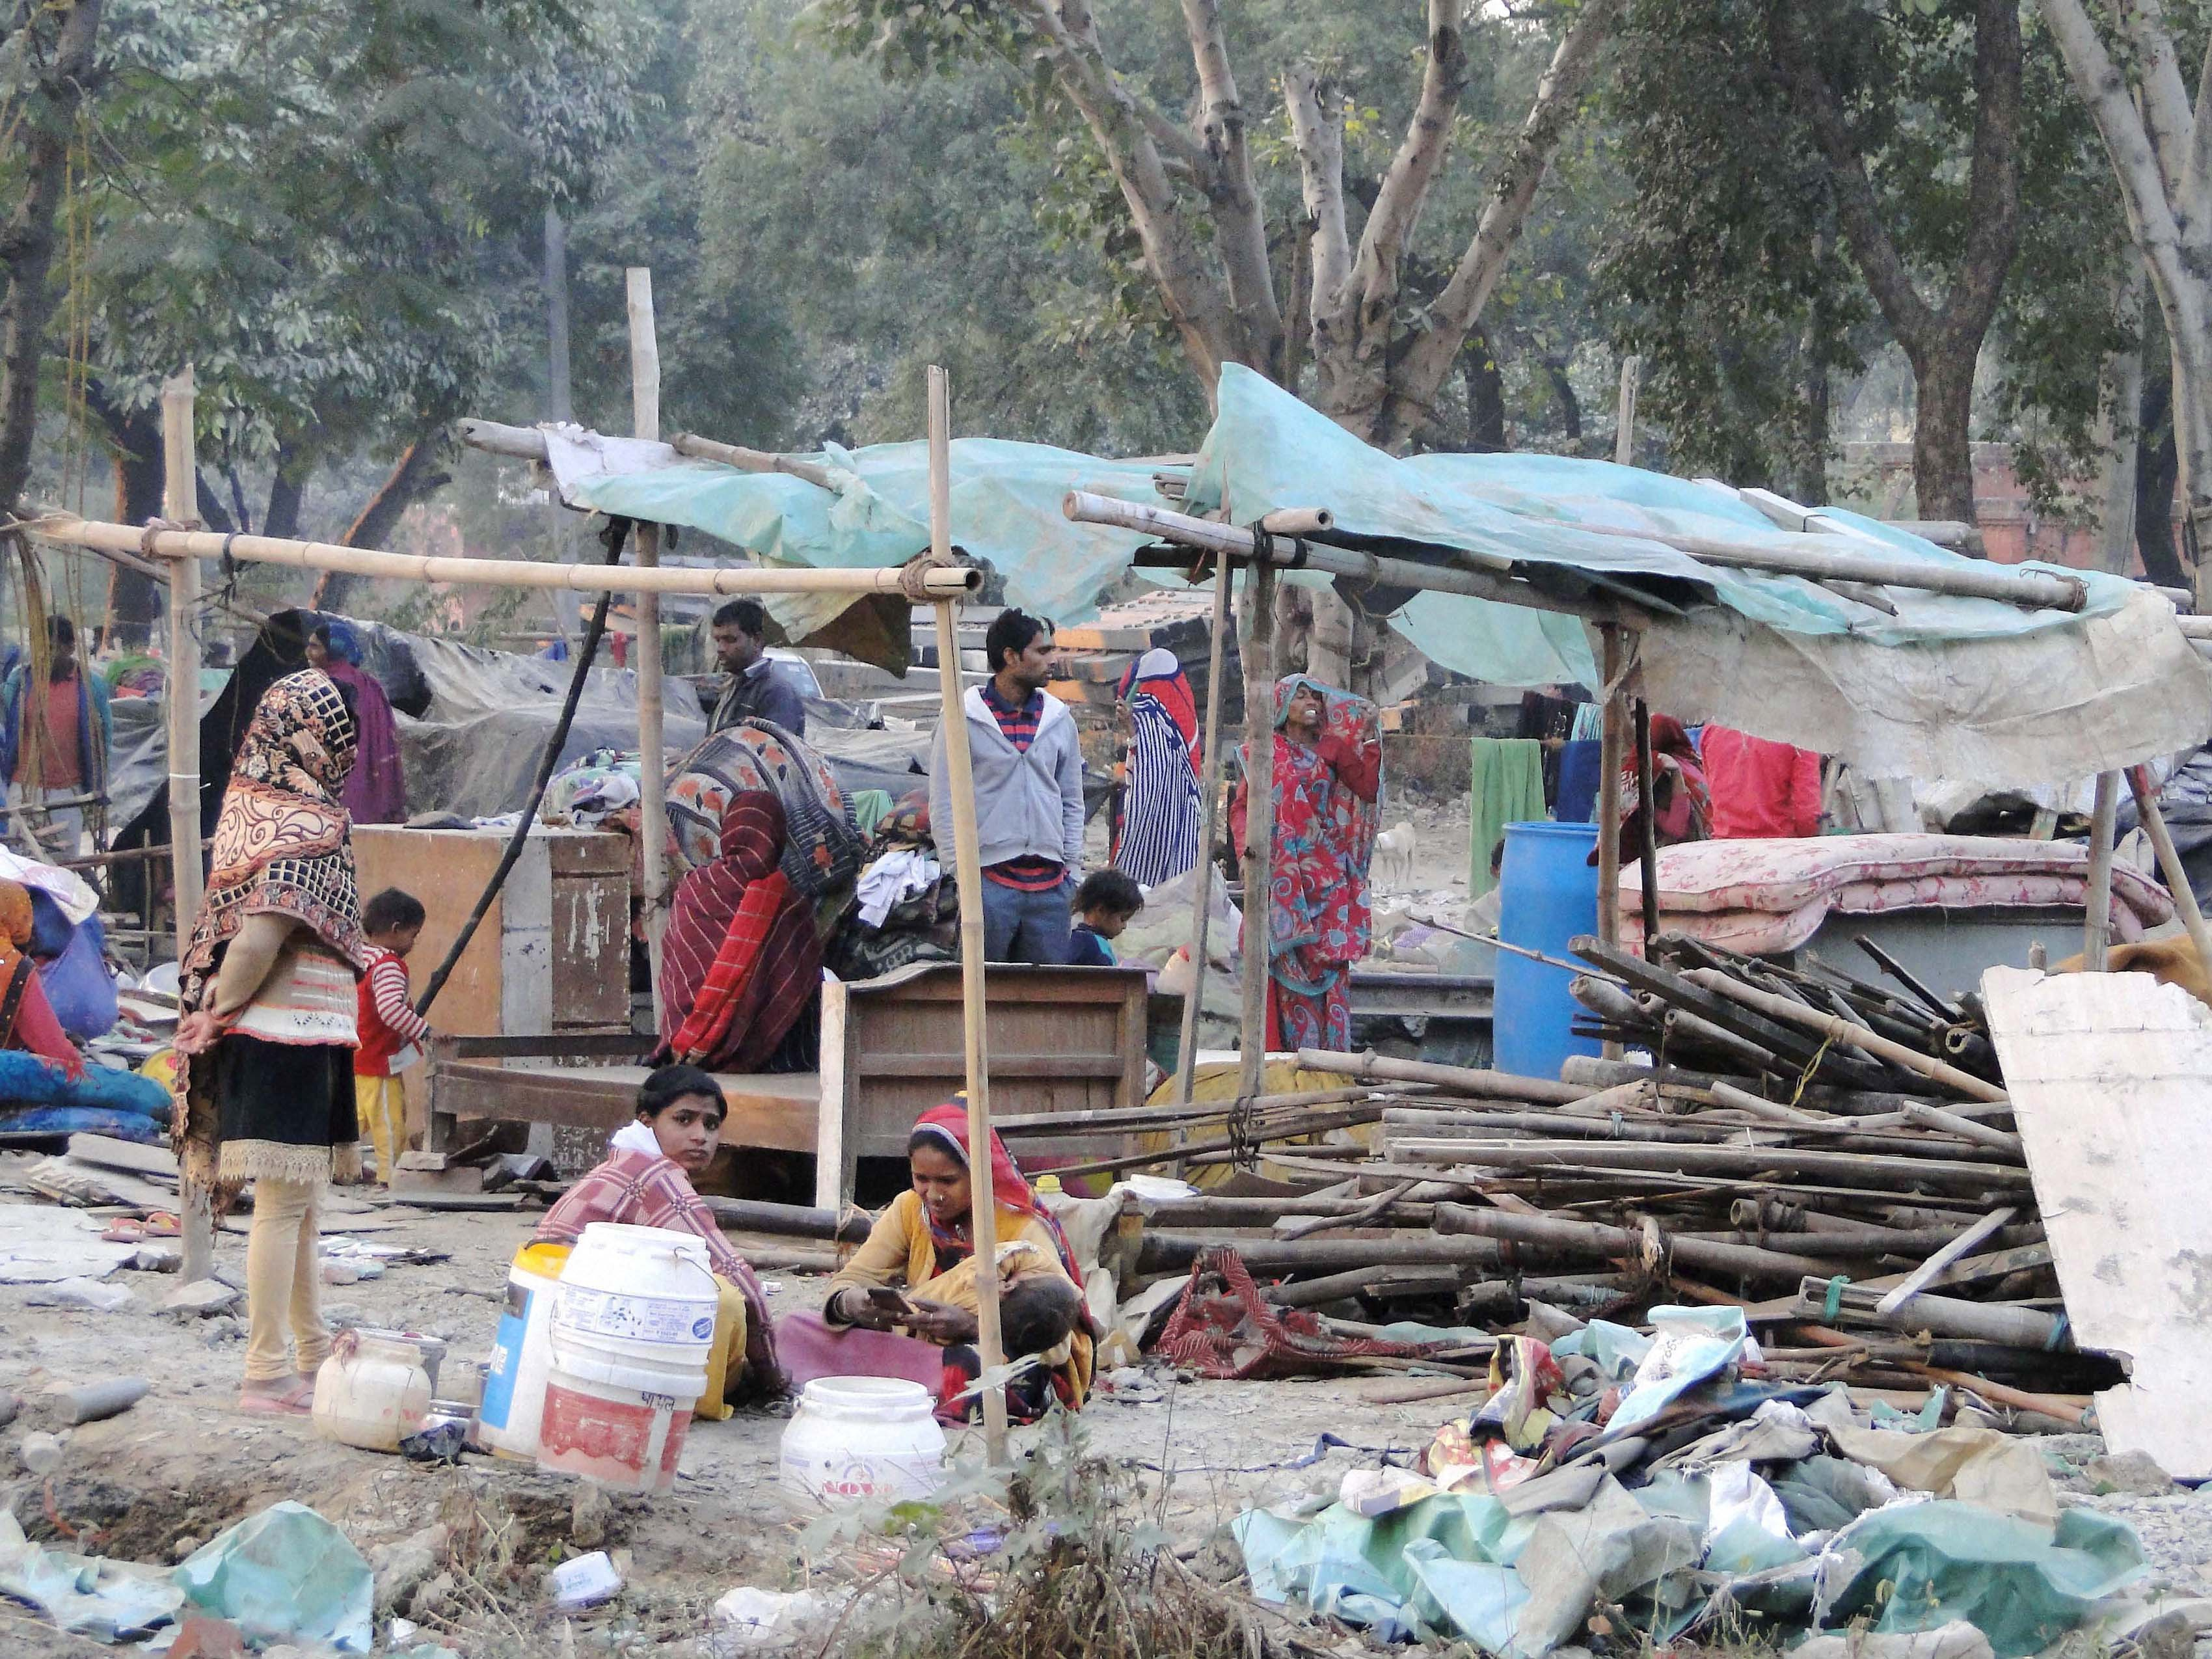 The Peremptory Demolition of Slums is a Violation of the Law